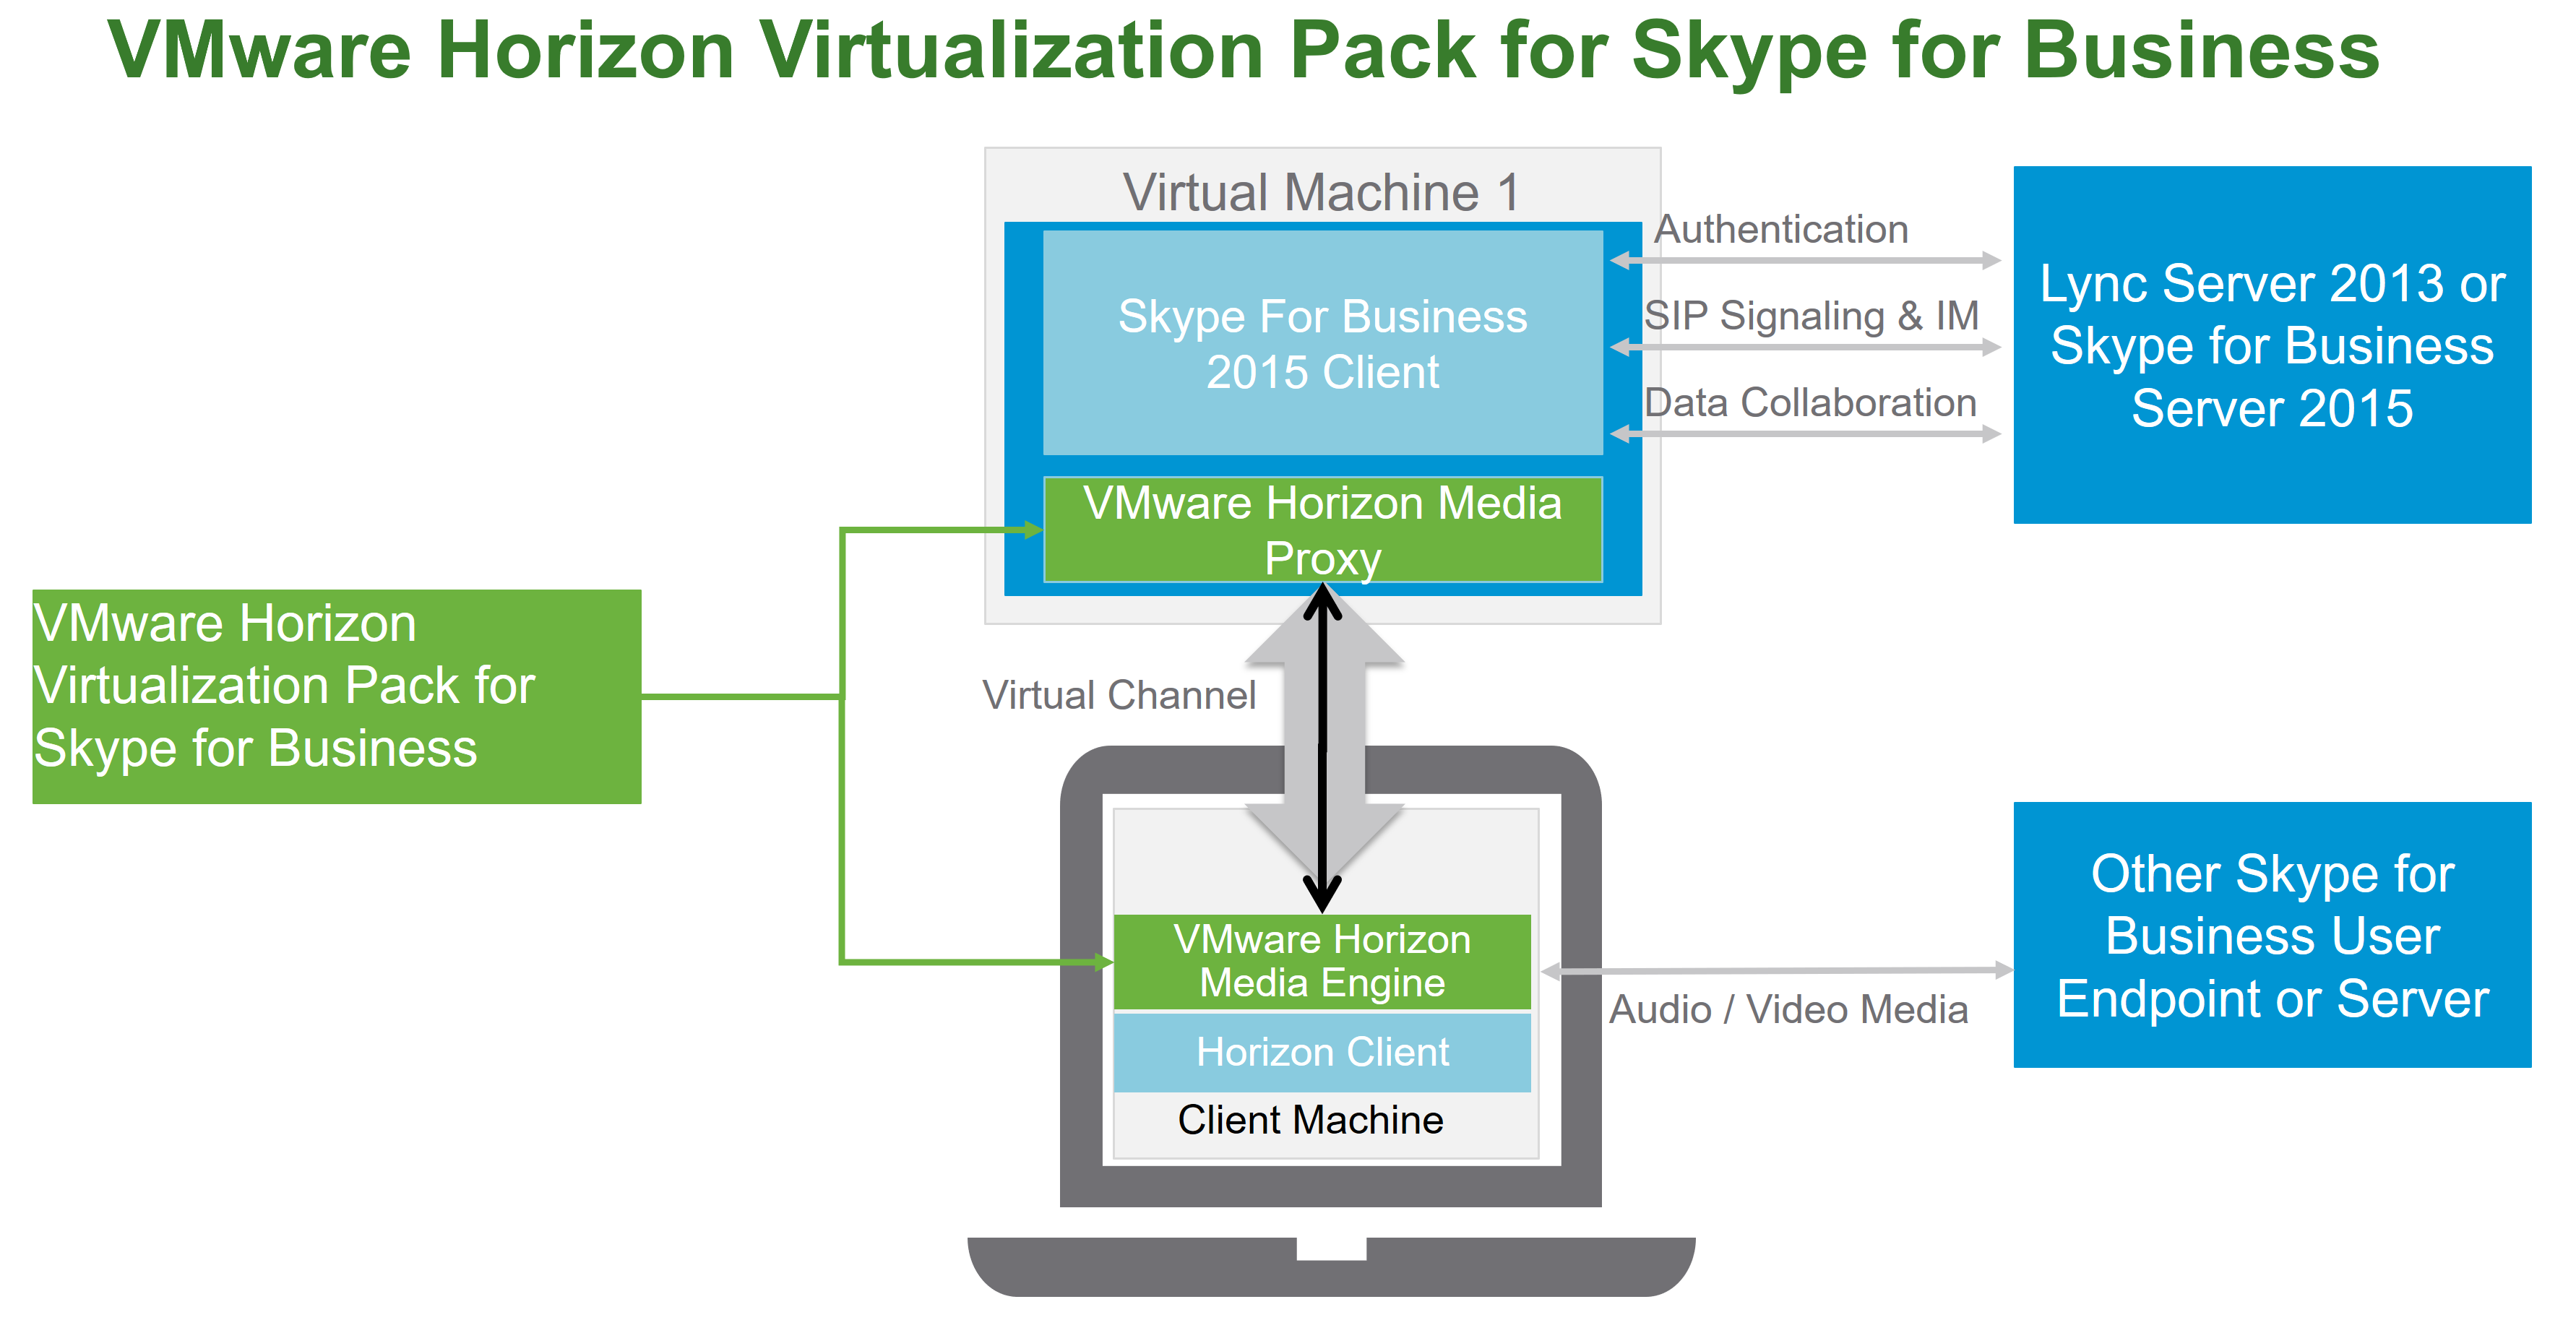 Coming Soon Horizon Virtualization Pack For Skype For Business Online Tutorials Business Data Business